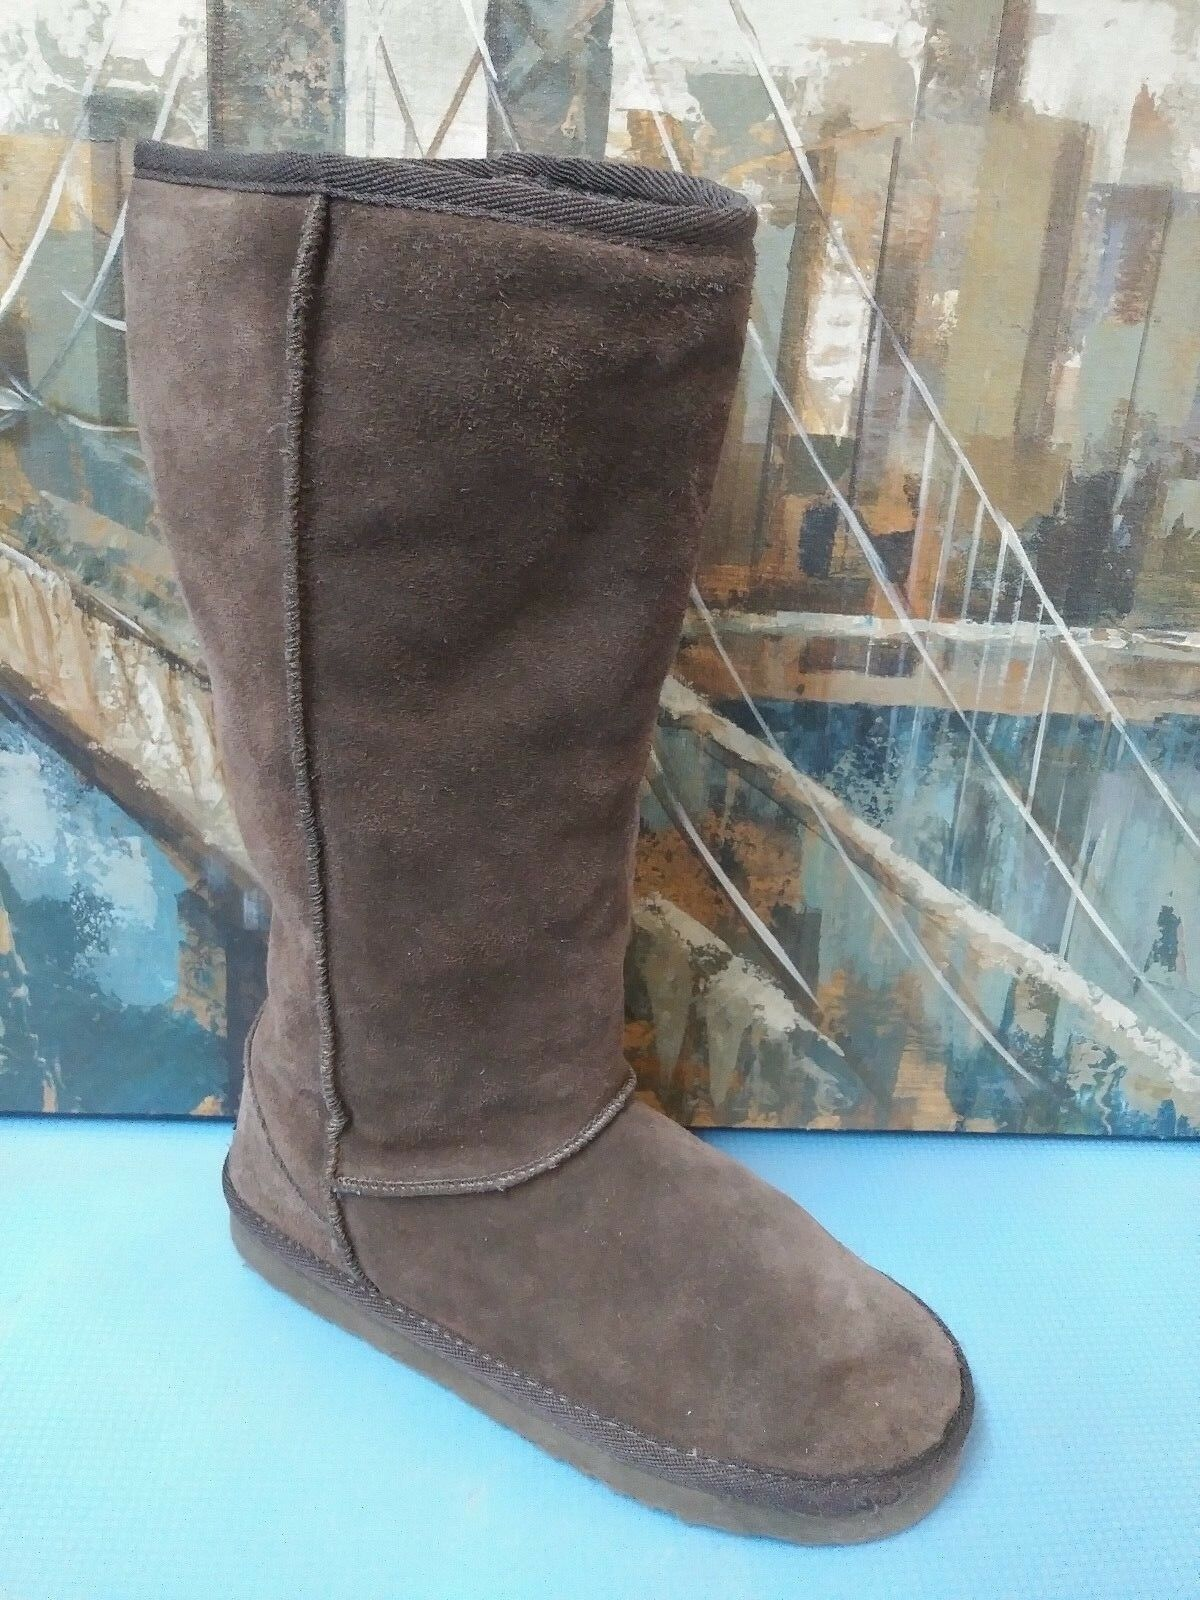 Skechers Womens  Brown Suede Ankle Boots 46382  Shoes sz 6.5 M